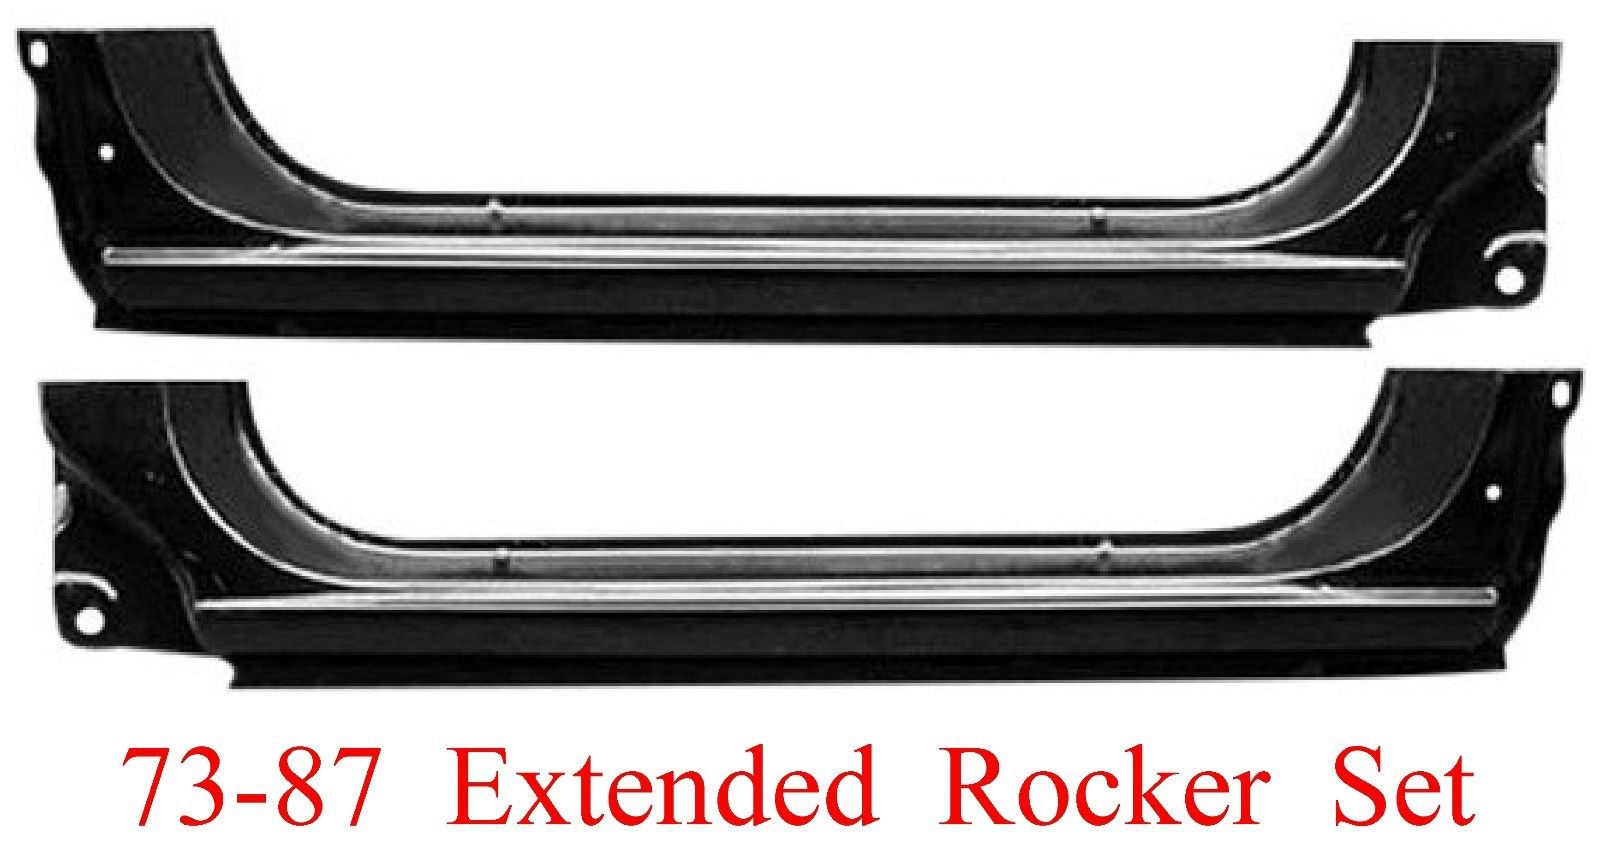 73-87 Chevy & GMC Extended Rocker Panel Set